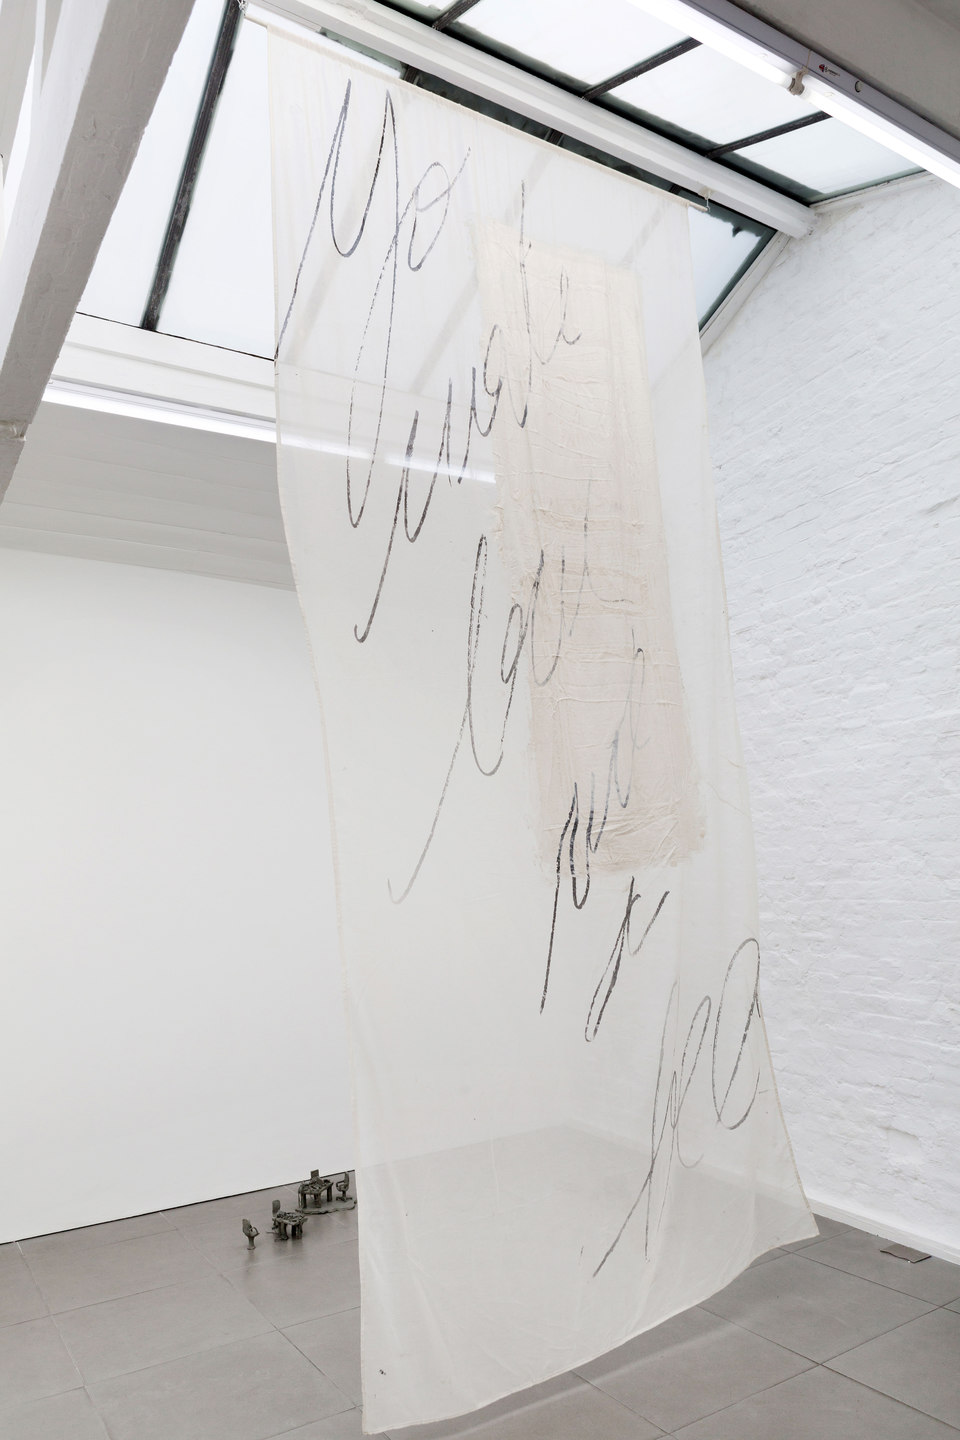 Mélanie Matranga, Emotional not sentimental, 2013, silicone silkscreen on cotton, dimensions variable, Cell Project Space